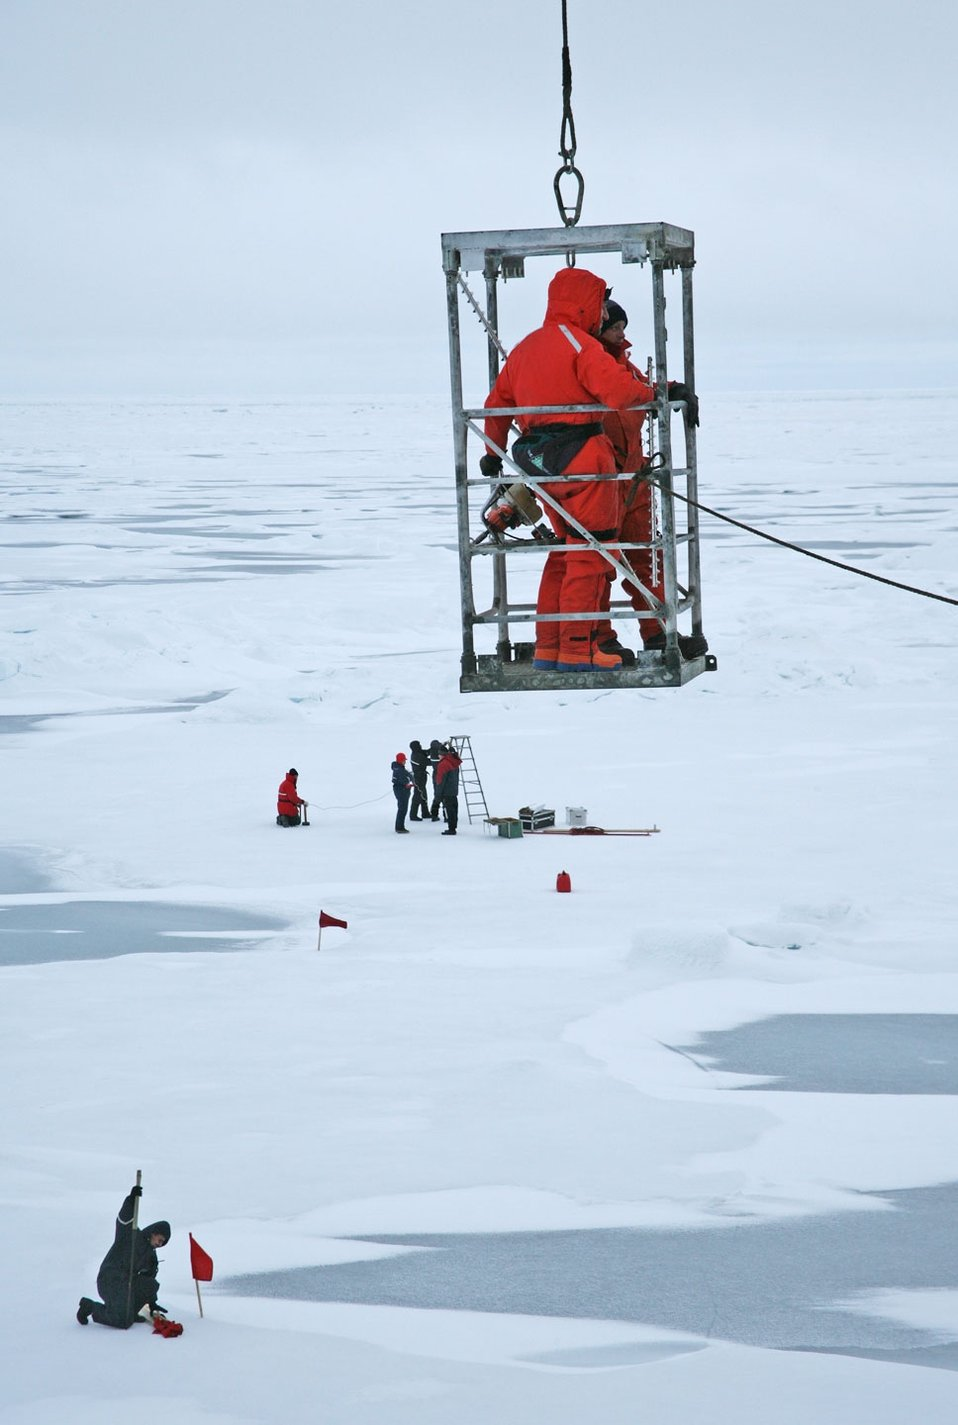 With no gangway available, scientists and crew had to be hoisted from the ship to the ice. NABOS 2006. See: http://www.naturalsciences.org/education/arctic/